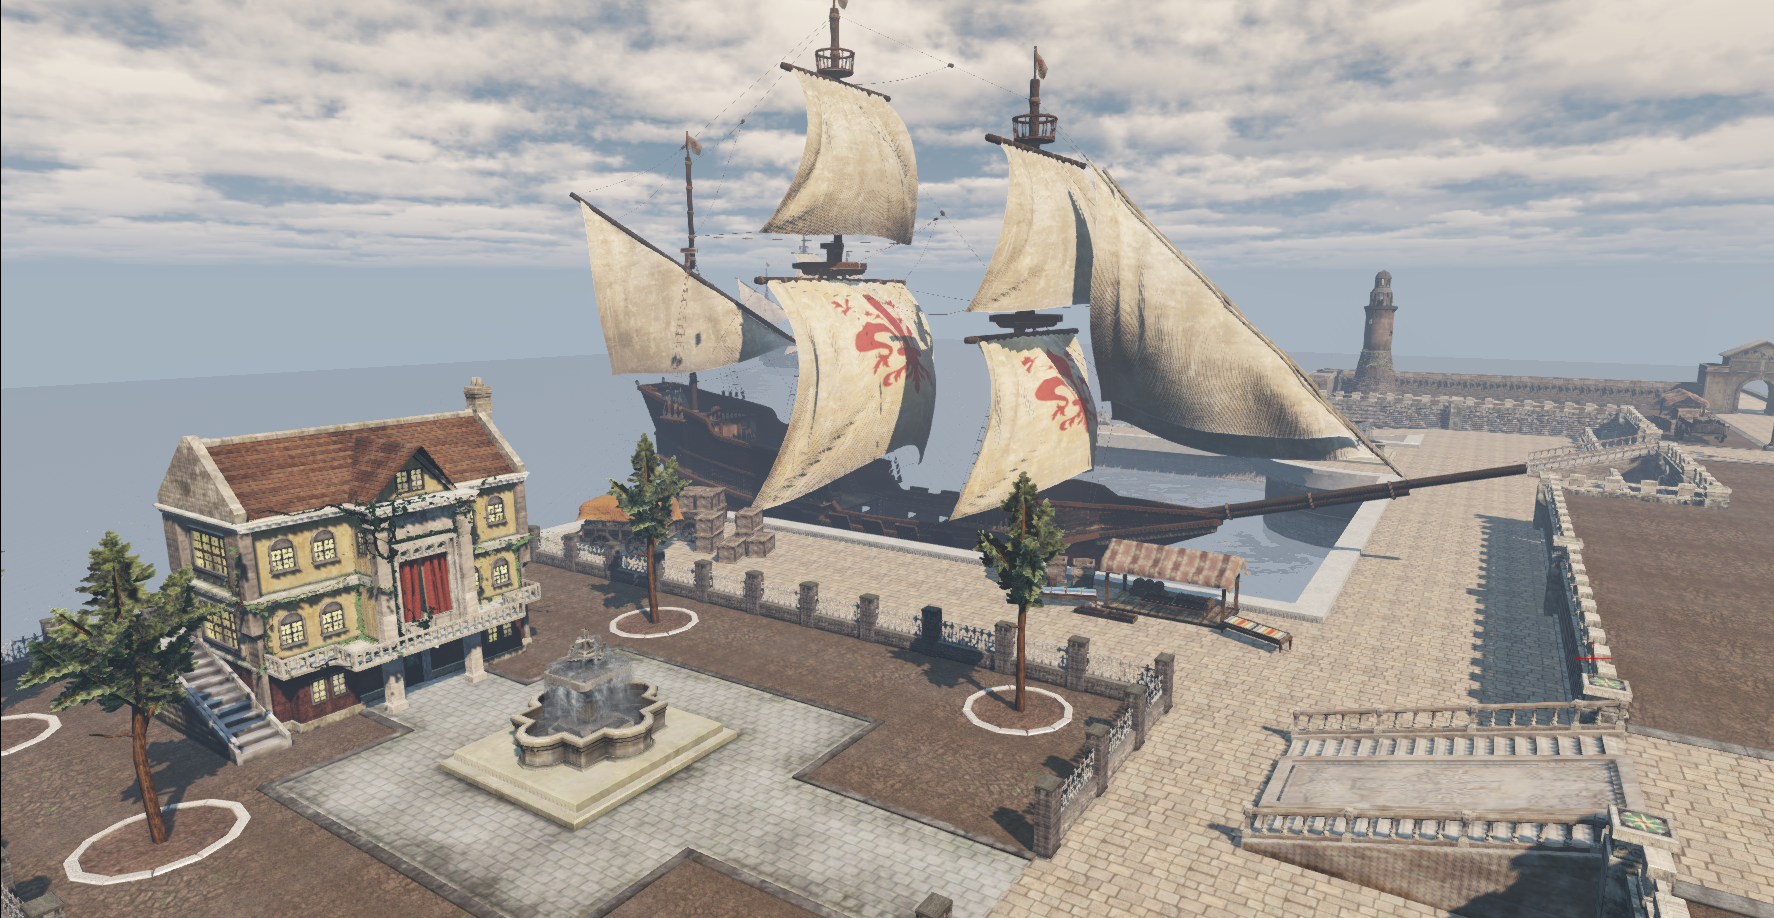 HarborCity with Ship